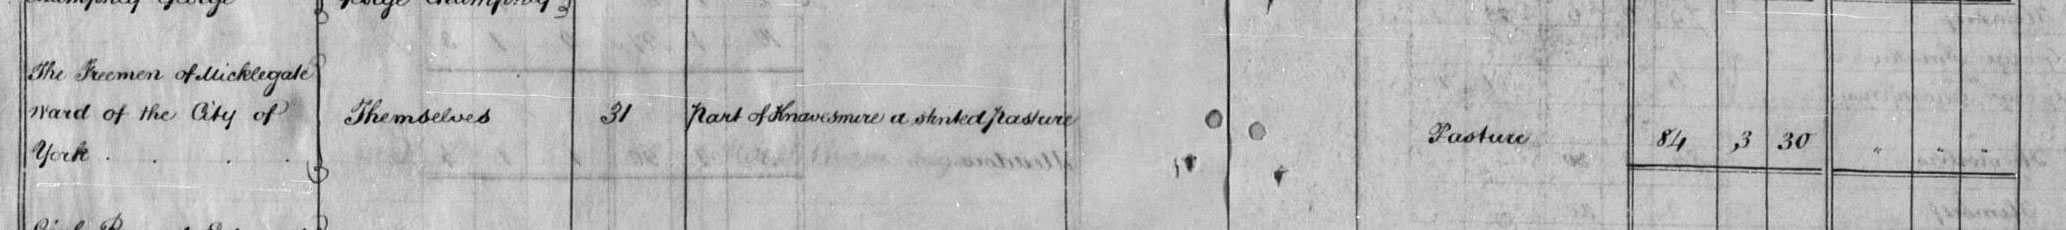 Apportionment book for Middlethorpe 1838 on TheGenealogist